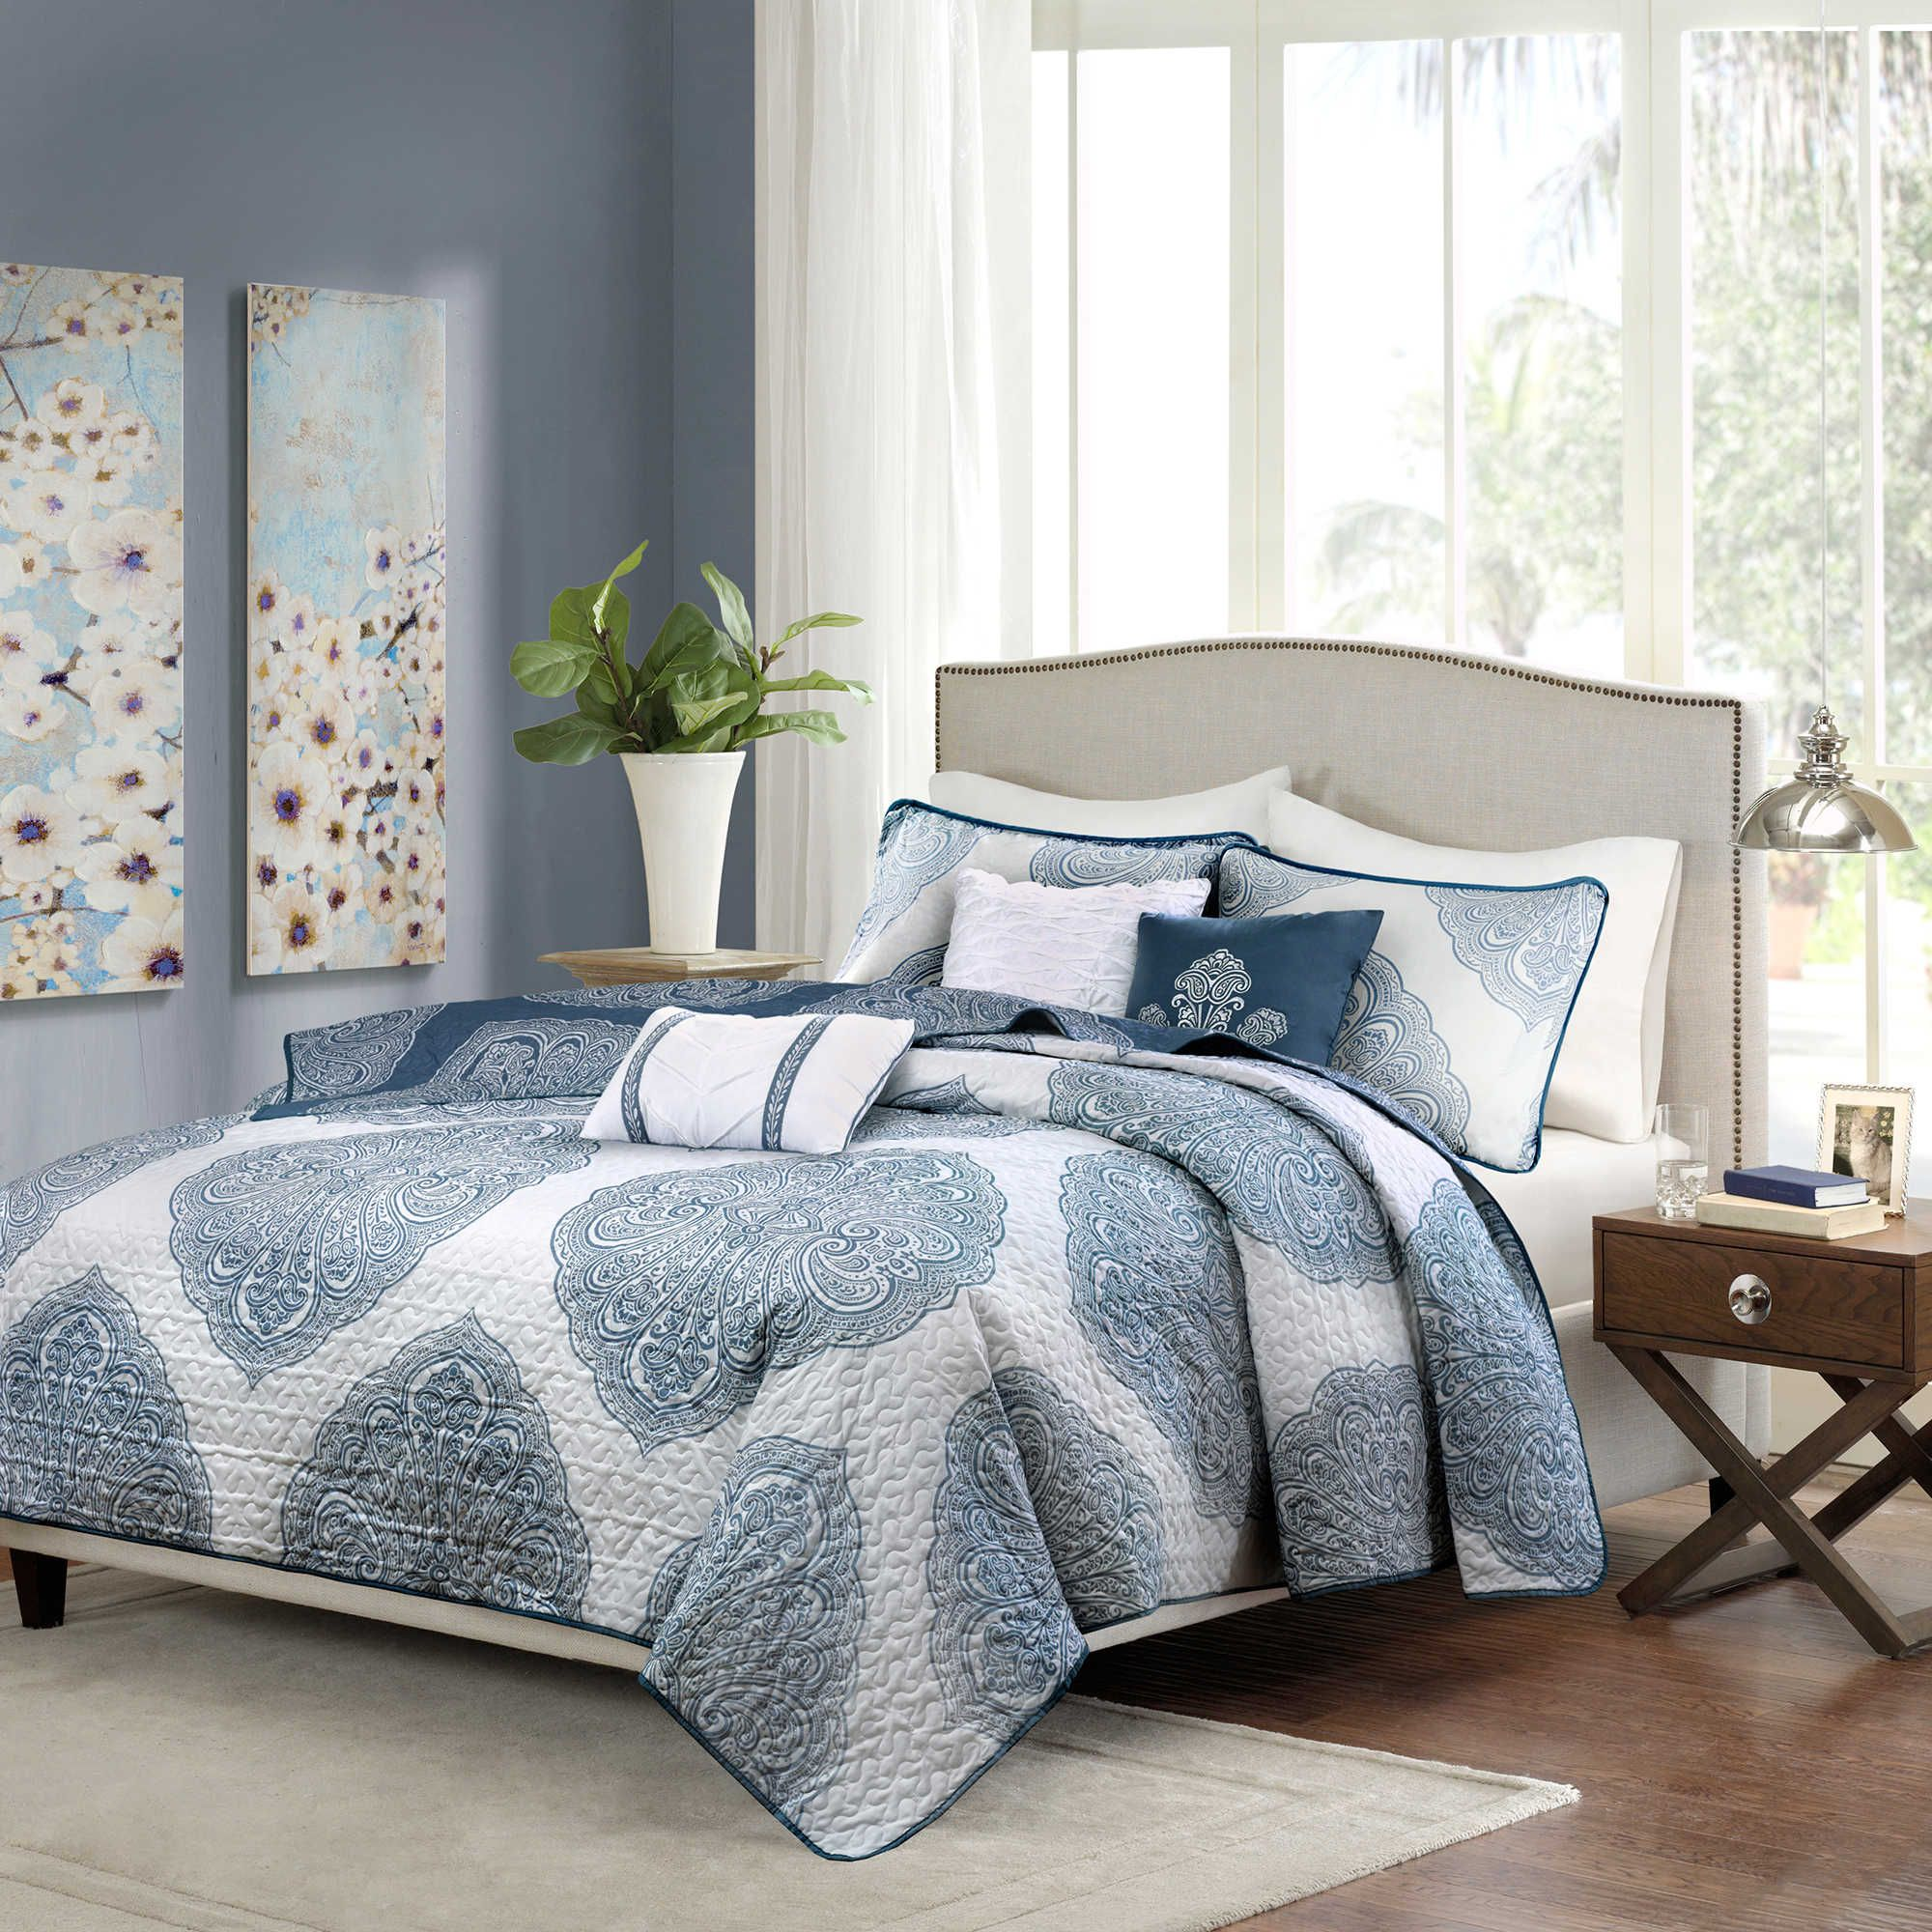 Madison Park Rachel 6 Piece Reversible Quilted Full Queen Coverlet Set In Navy With Images Quilted Coverlet Coverlet Set Quilt Sets Bedding